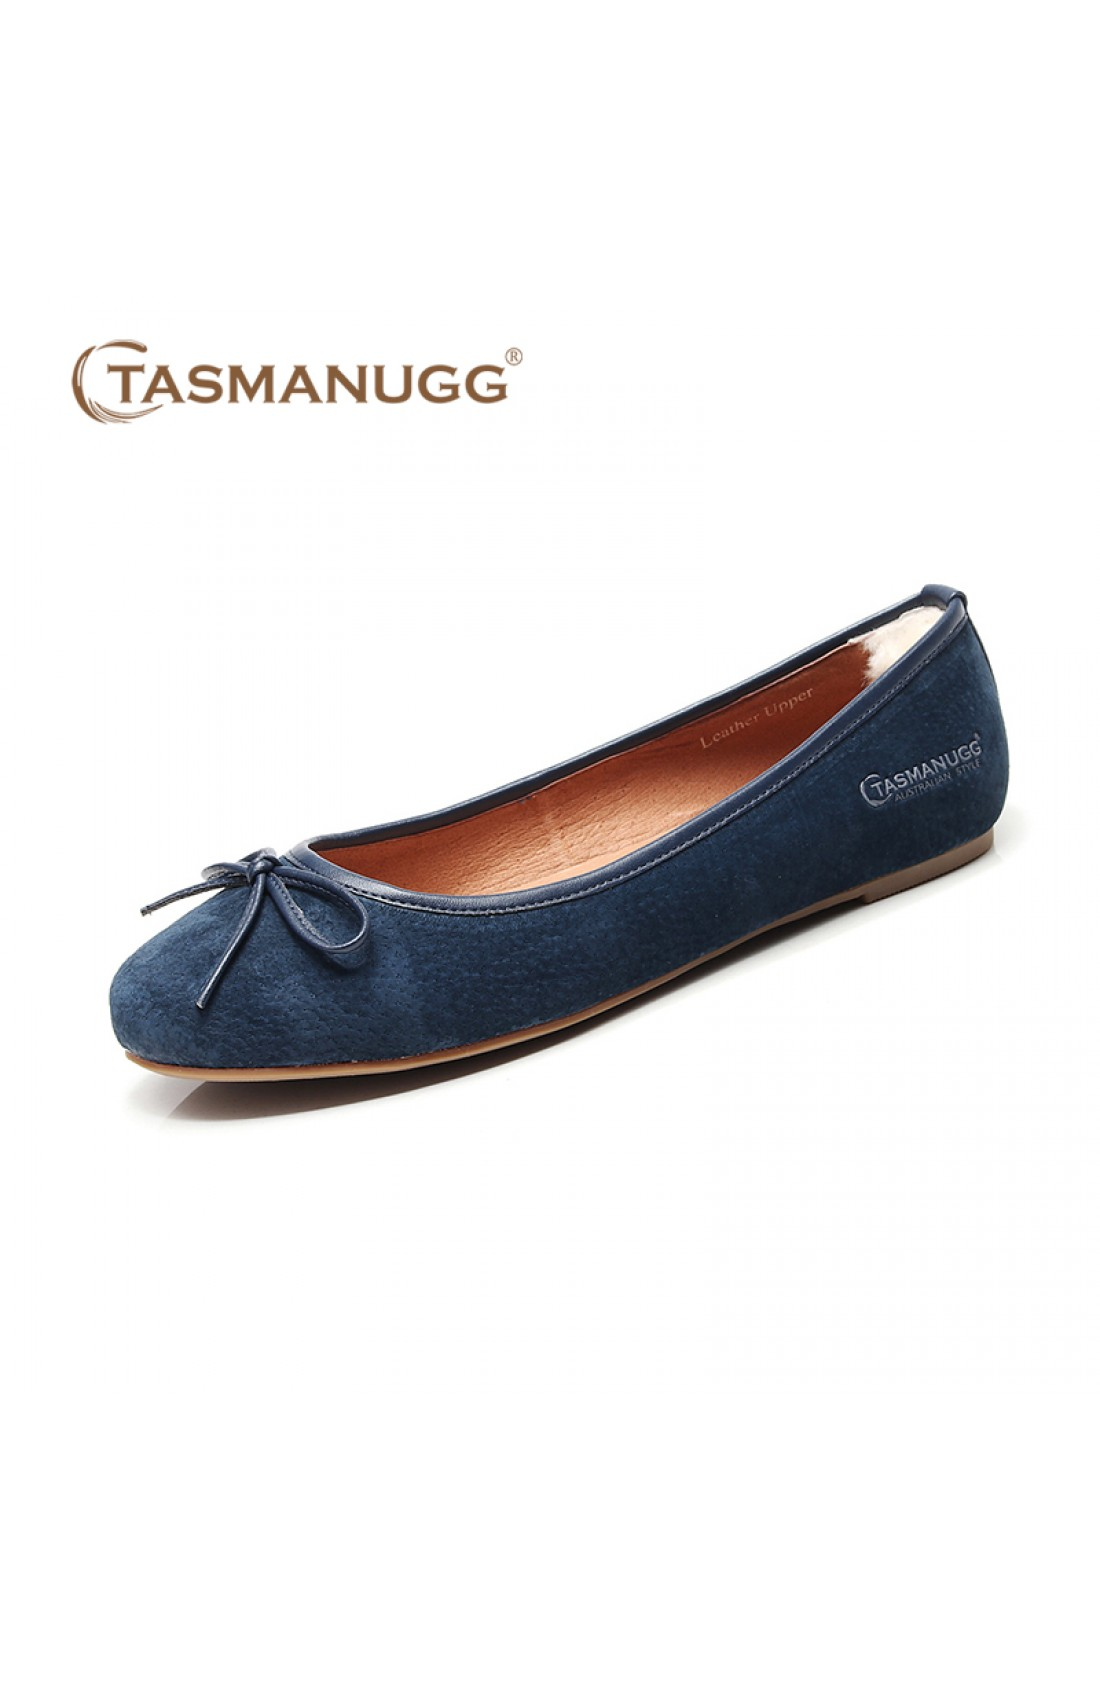 4112-Ballet Shoes-Navy